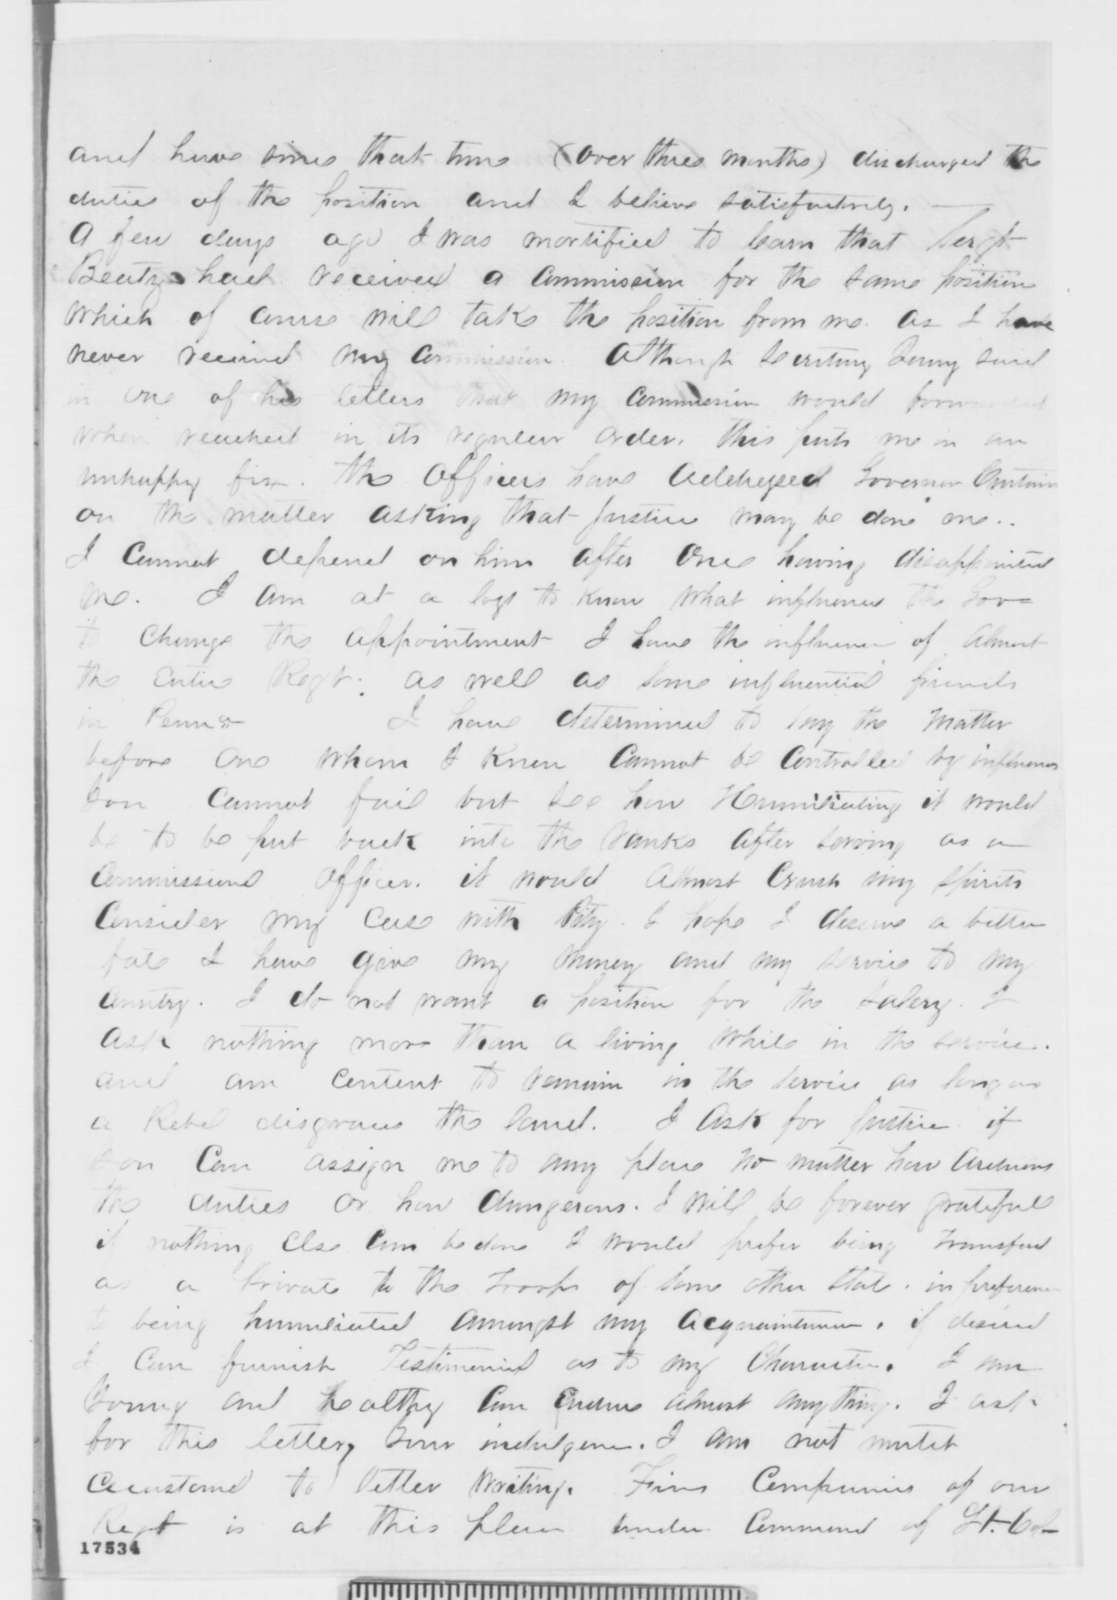 John L. Roper to Abraham Lincoln, Friday, August 08, 1862  (Seeks promotion in army)